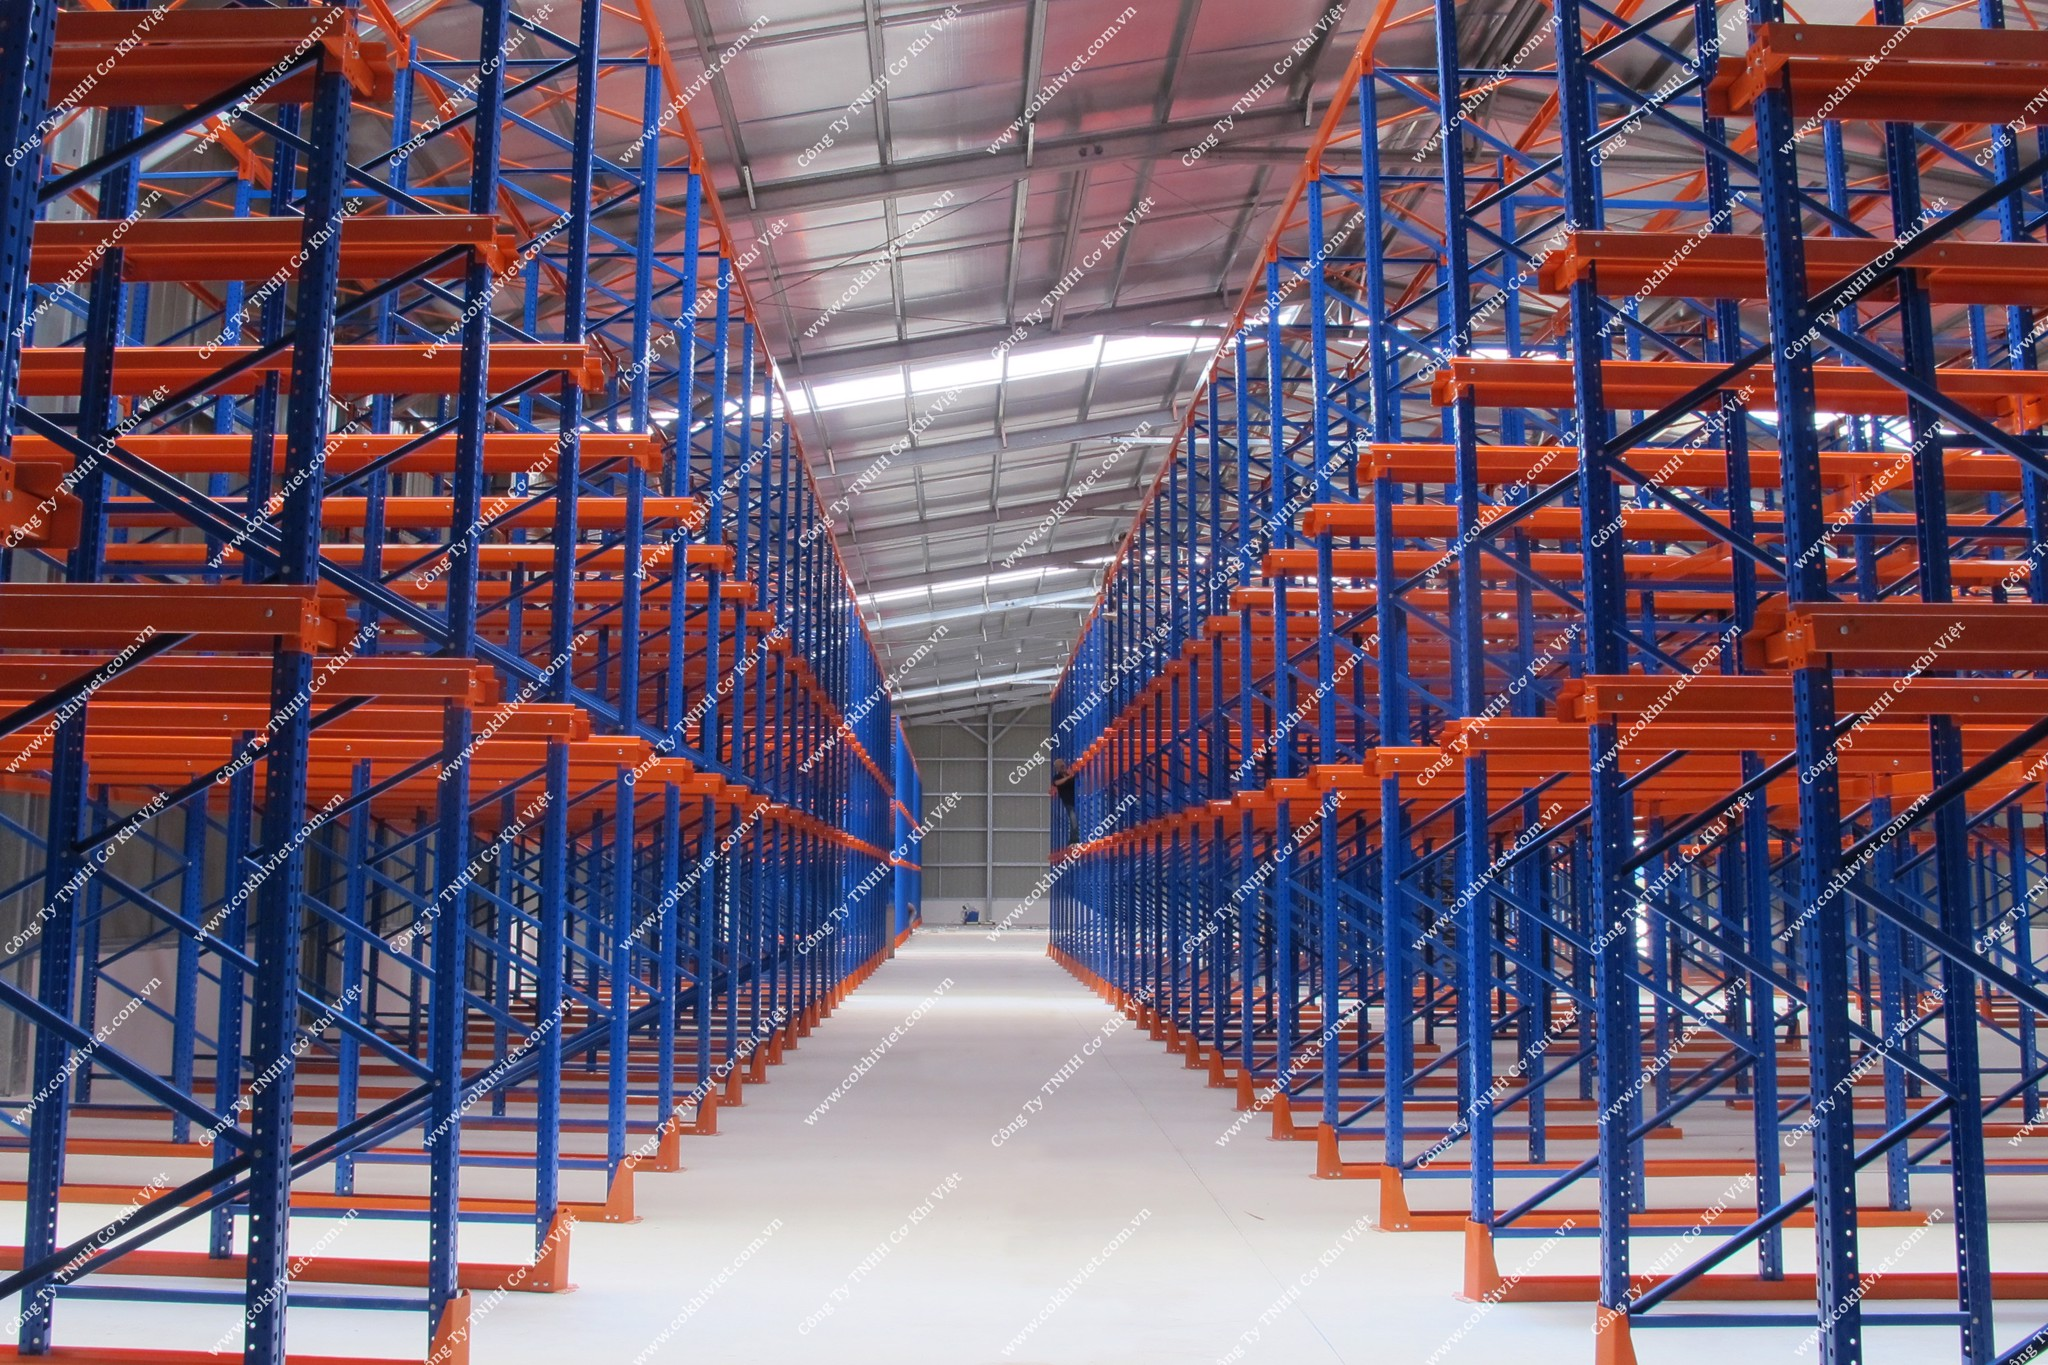 Viet Mechanical - The Best Solution For Warehouse